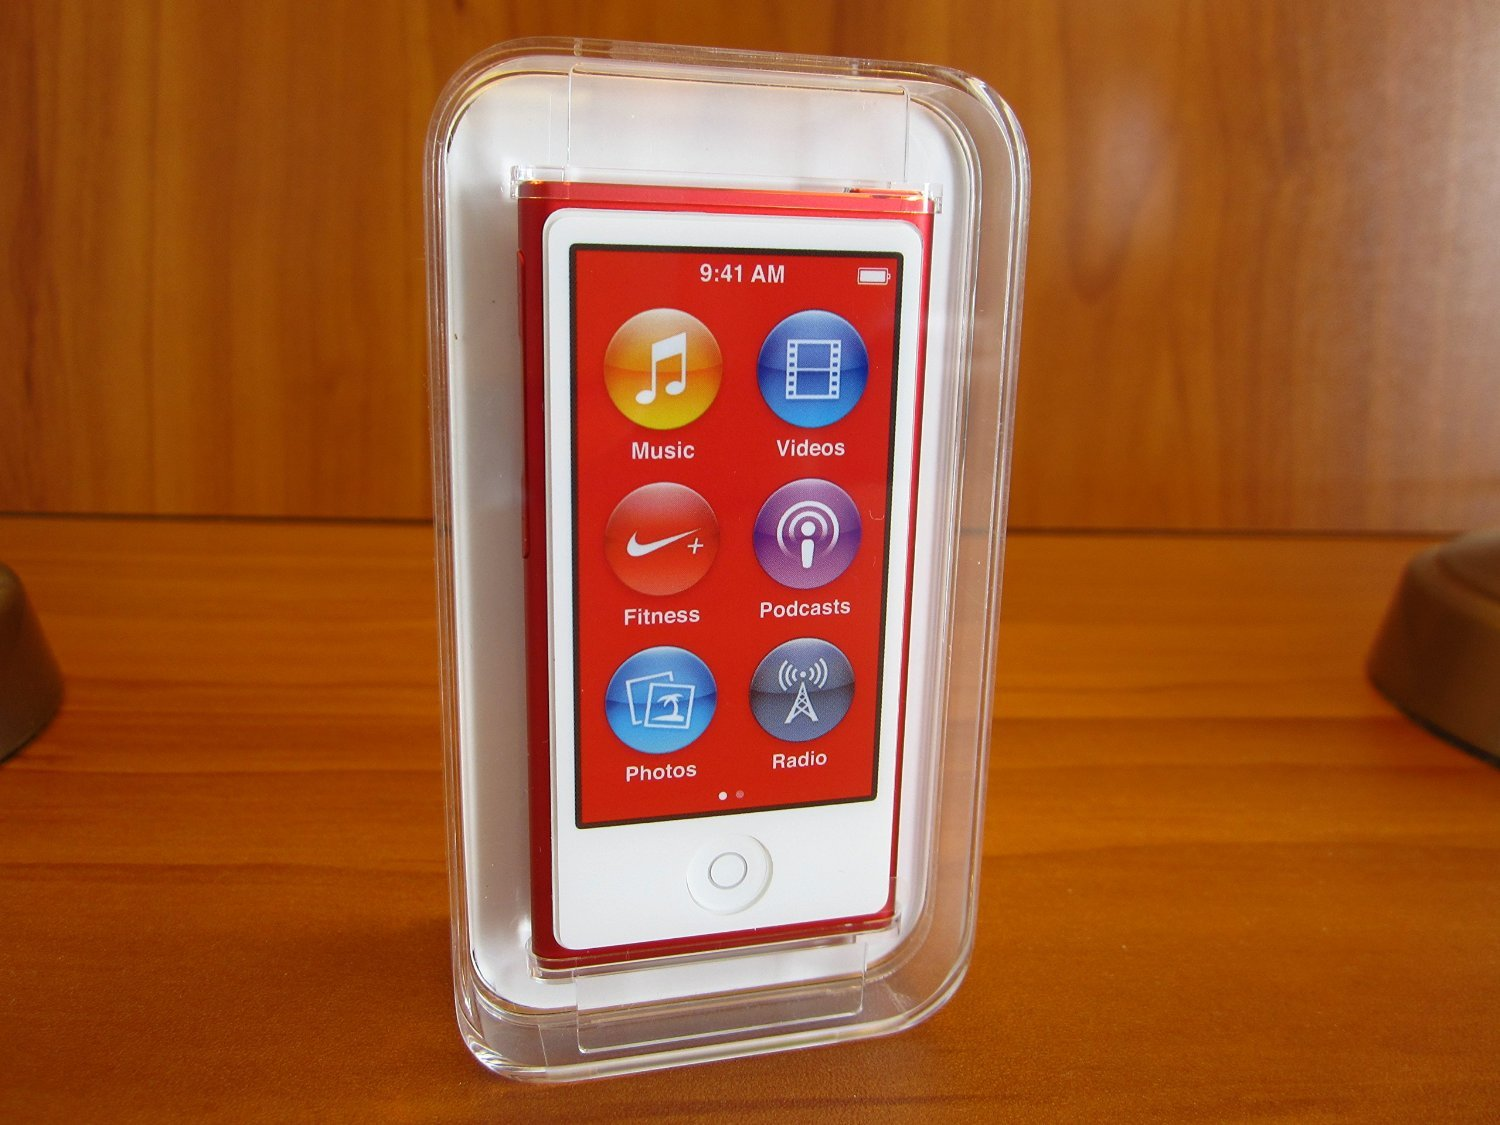 Apple iPod nano 16GB Reproductor de MP4 16GB Rojo - Reproductor MP3 ...